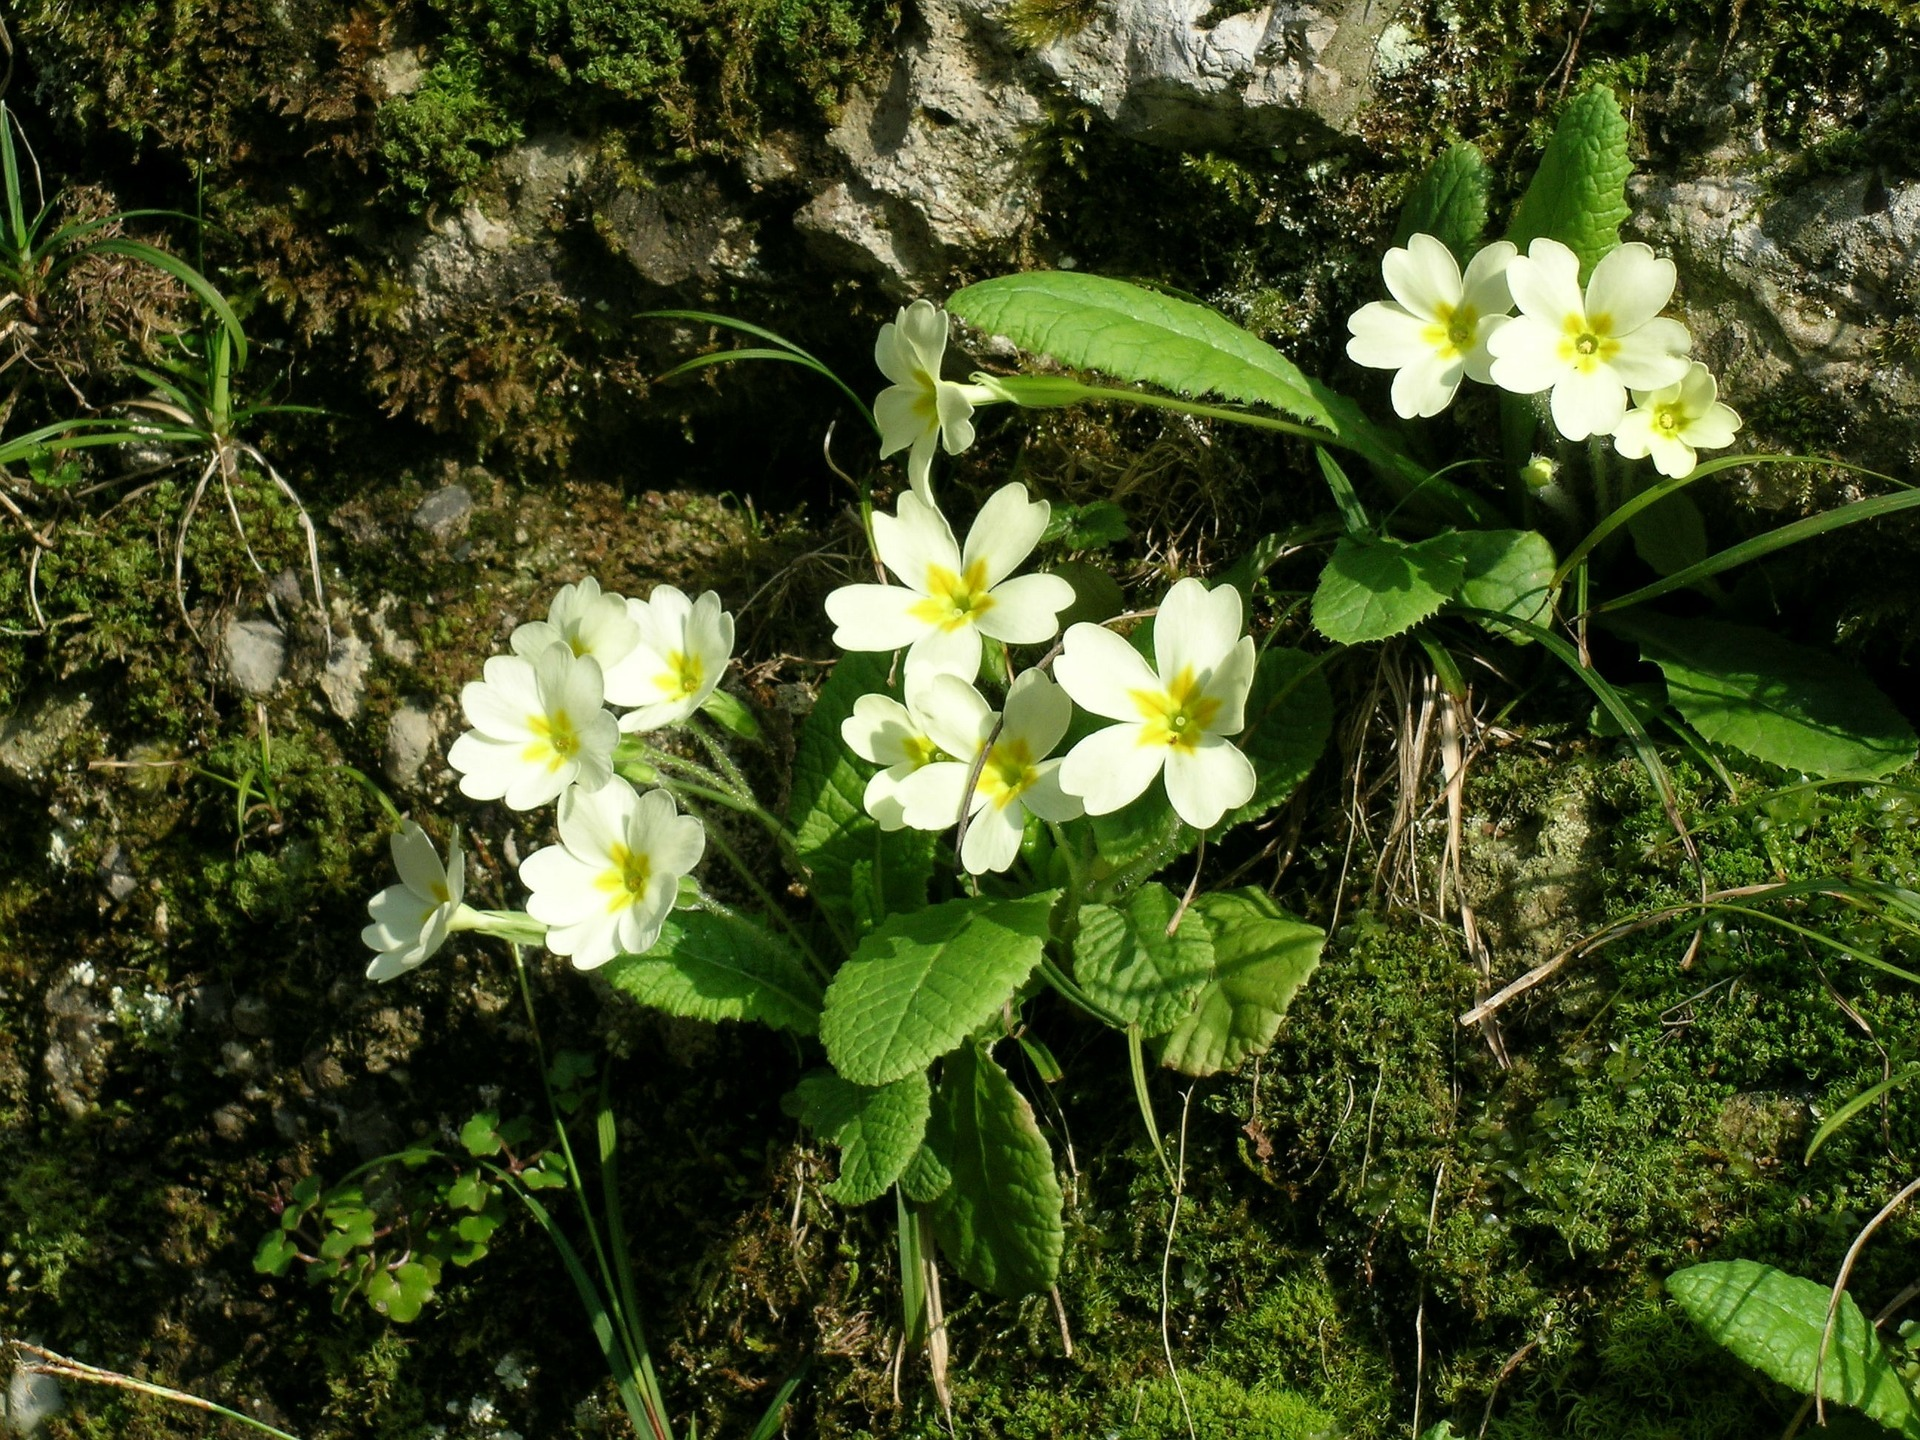 Primroses - there is much folklore surrounding these attractive spring flowers